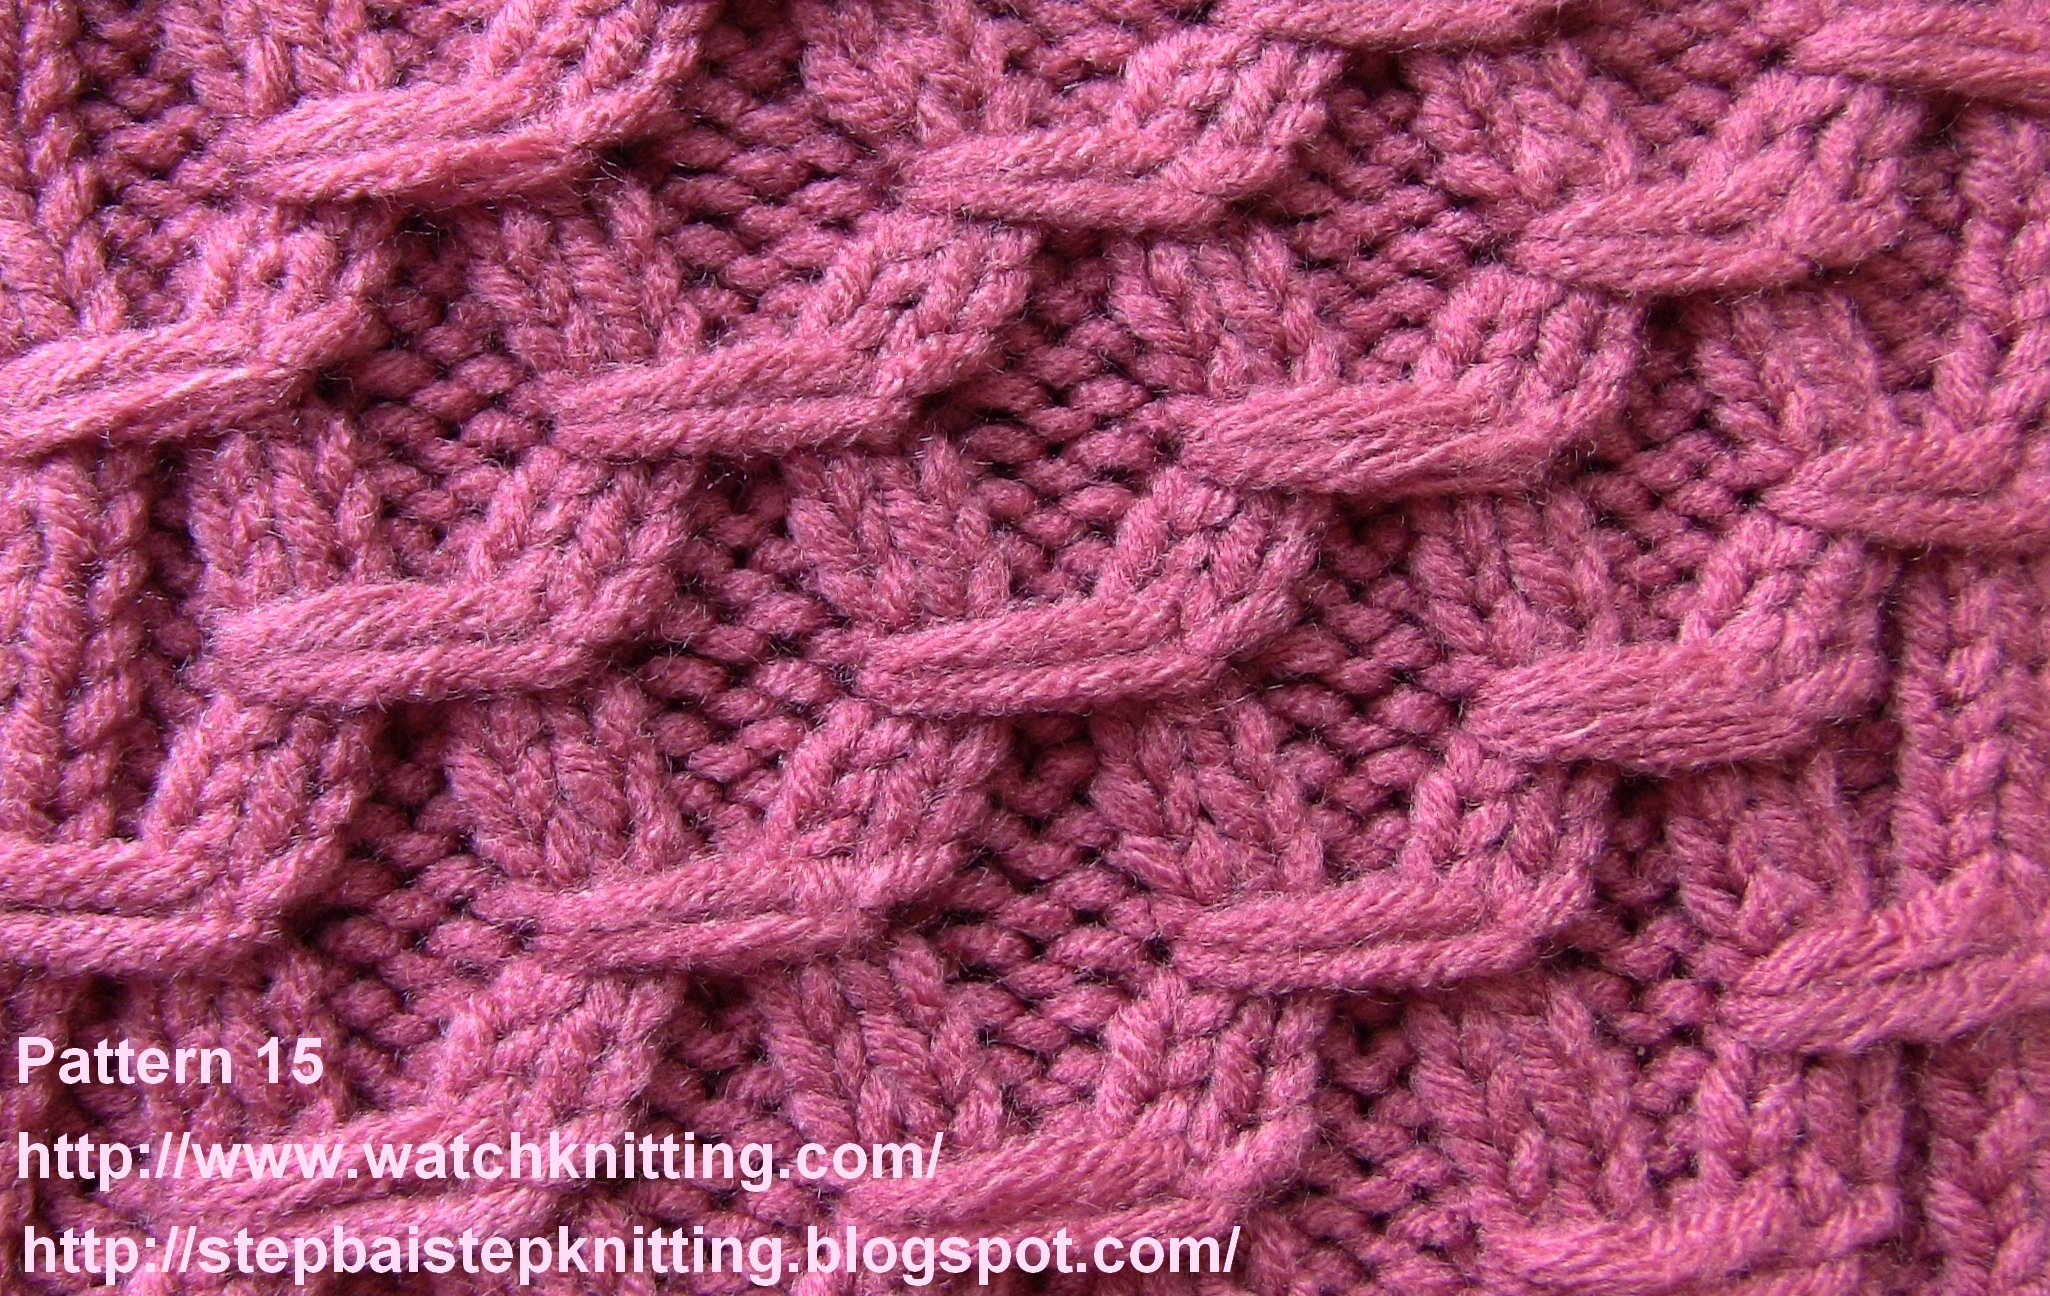 Knitting Patterns With Picture Instructions : Embossed Knitting stitches Watch Knitting